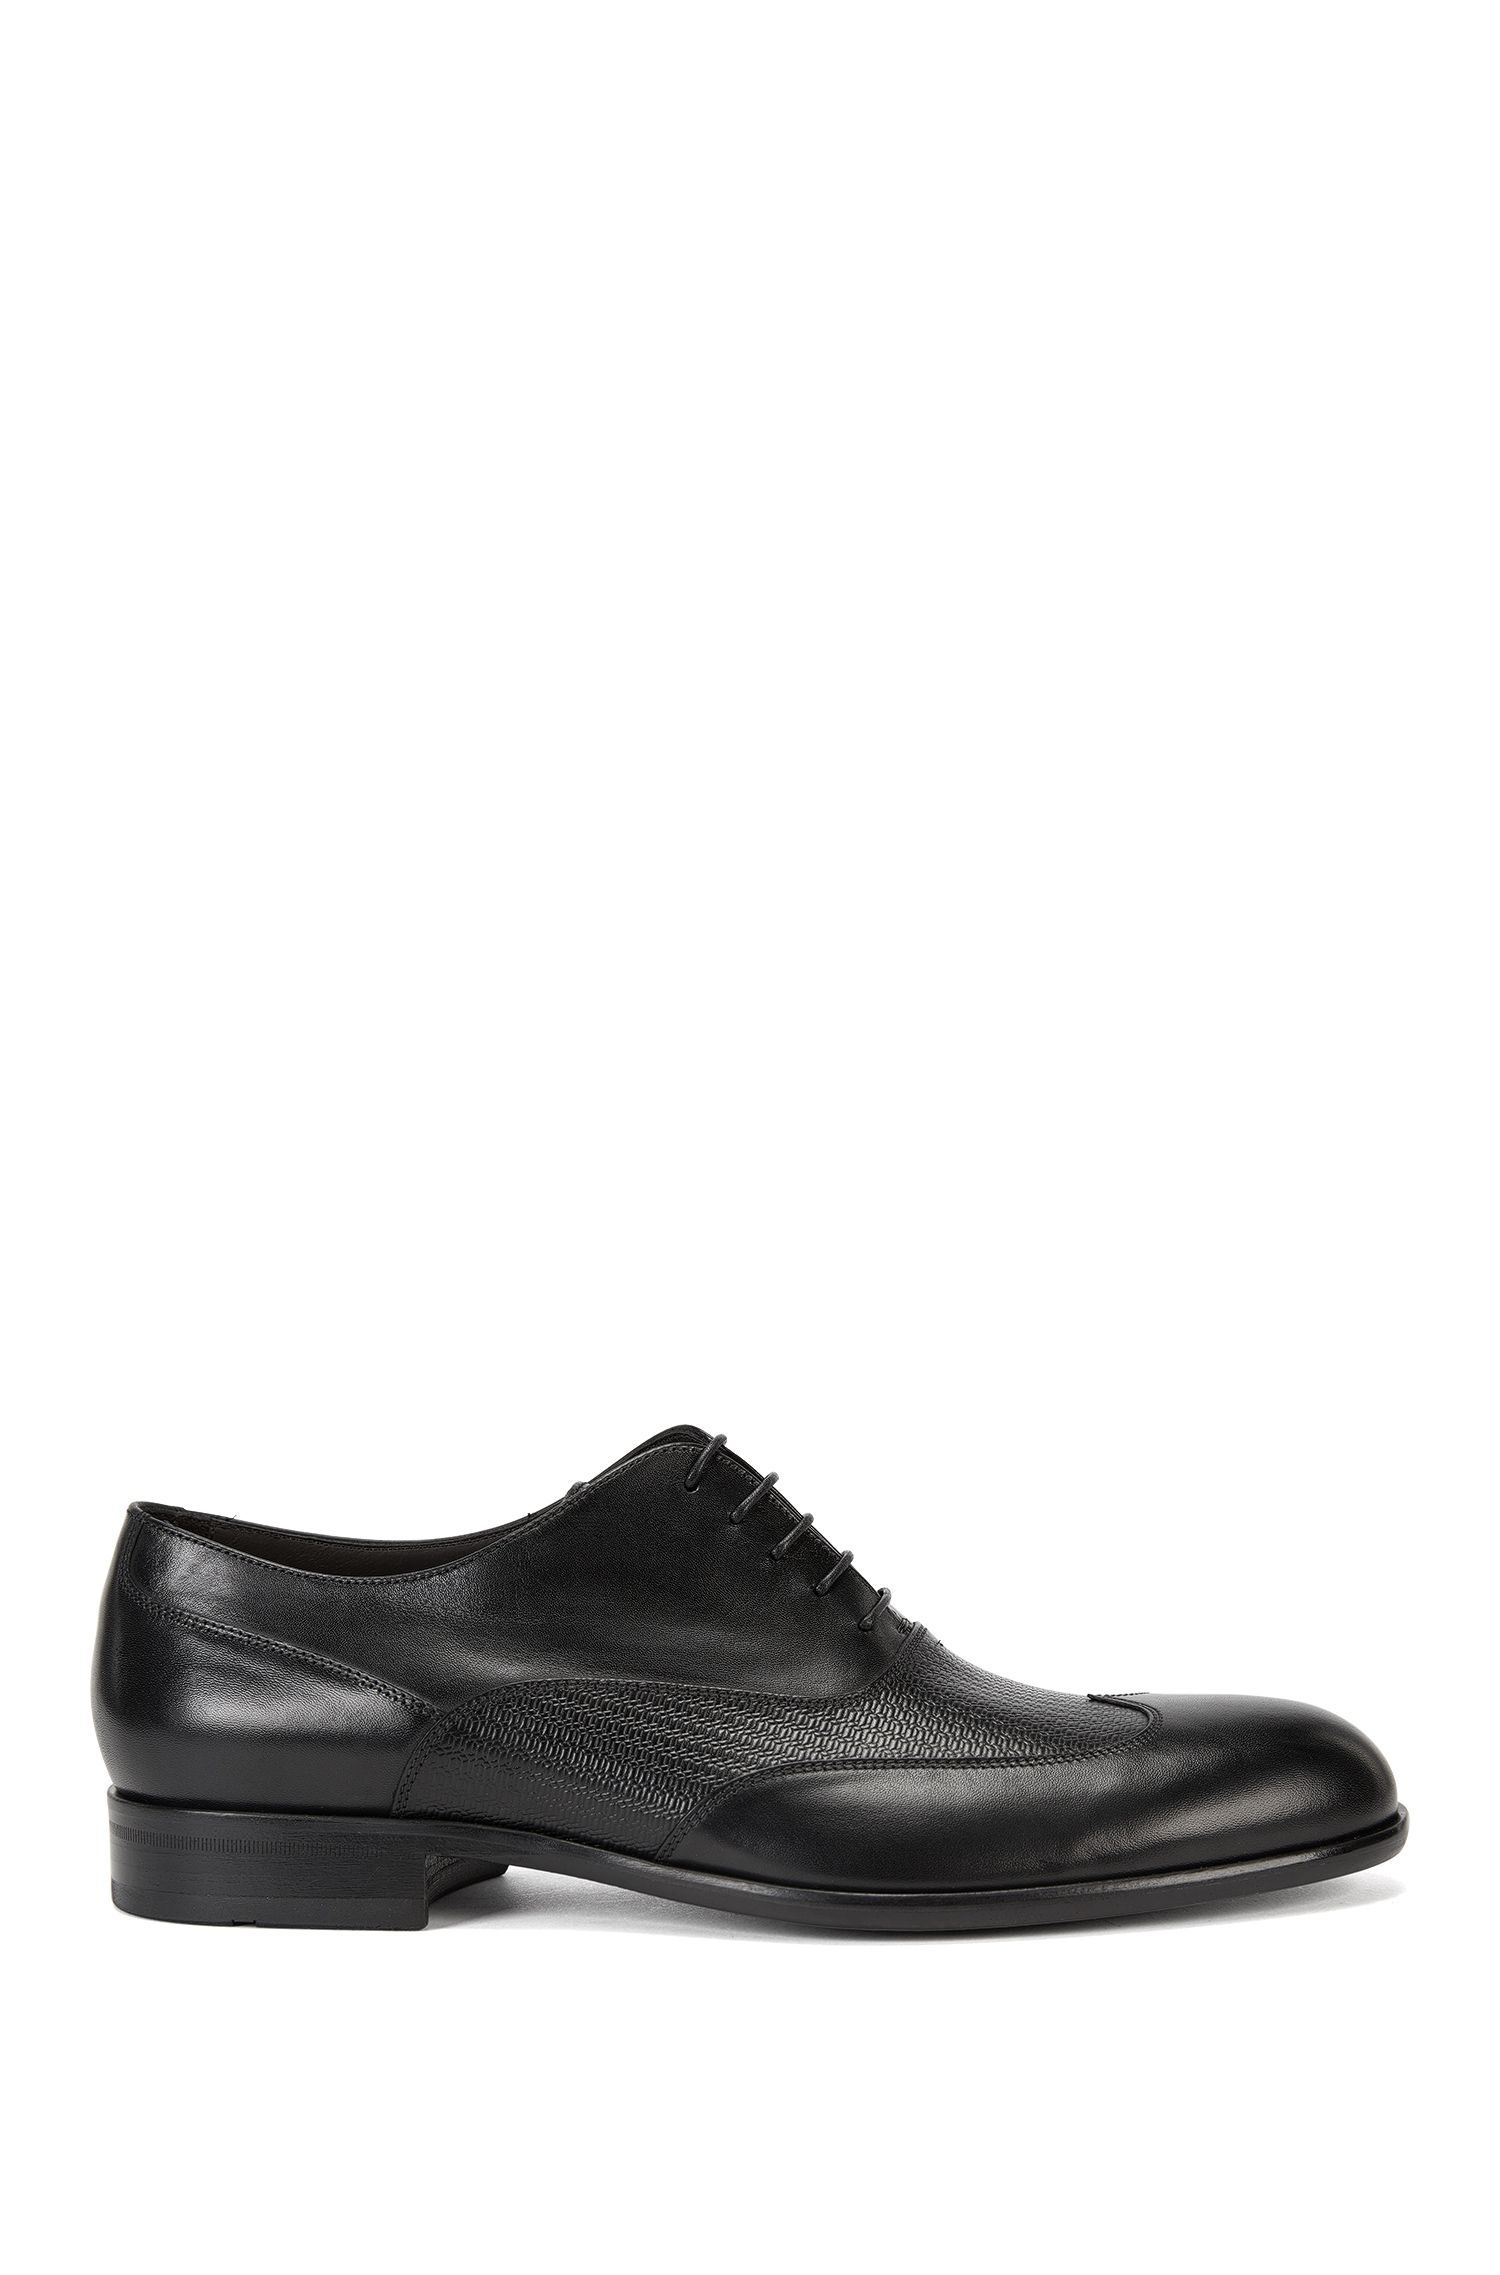 Leather Oxford shoes with printed detail